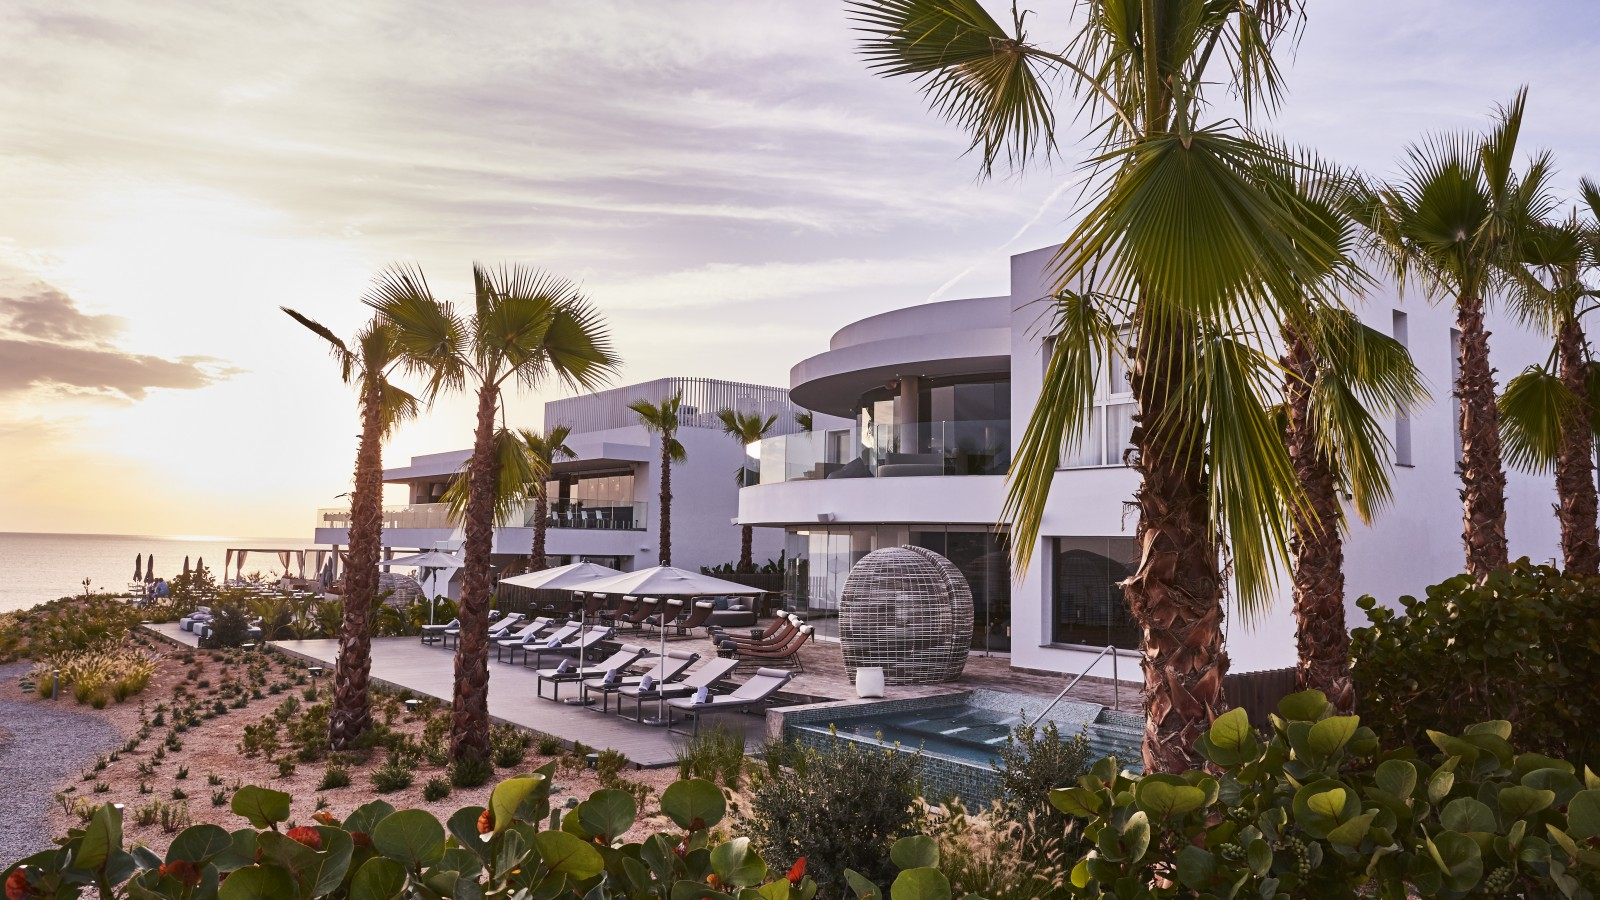 7Pines Resort Ibiza - Spa and Restaurants